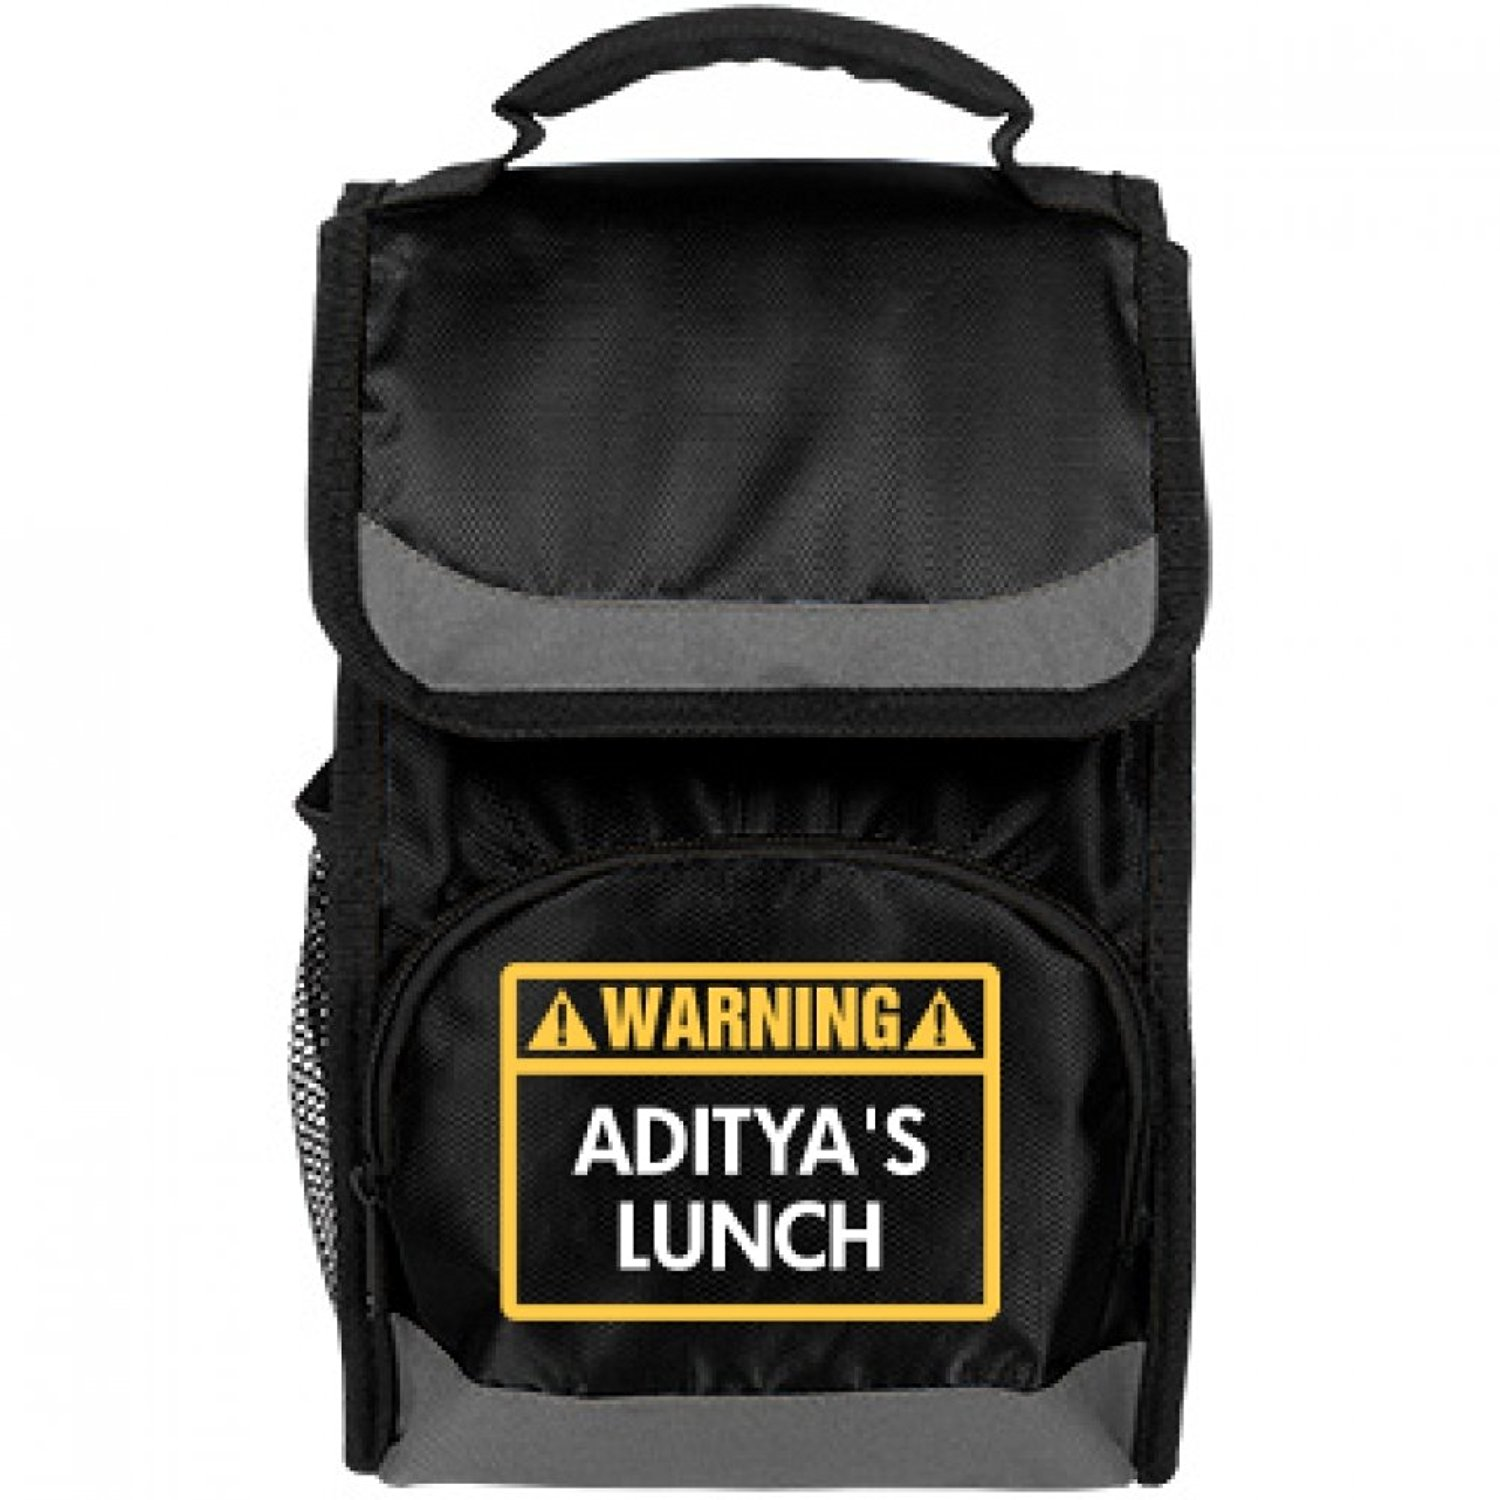 Funny Warning Aditya's Lunch Bag: Port Authority Flap Lunch Cooler Bag